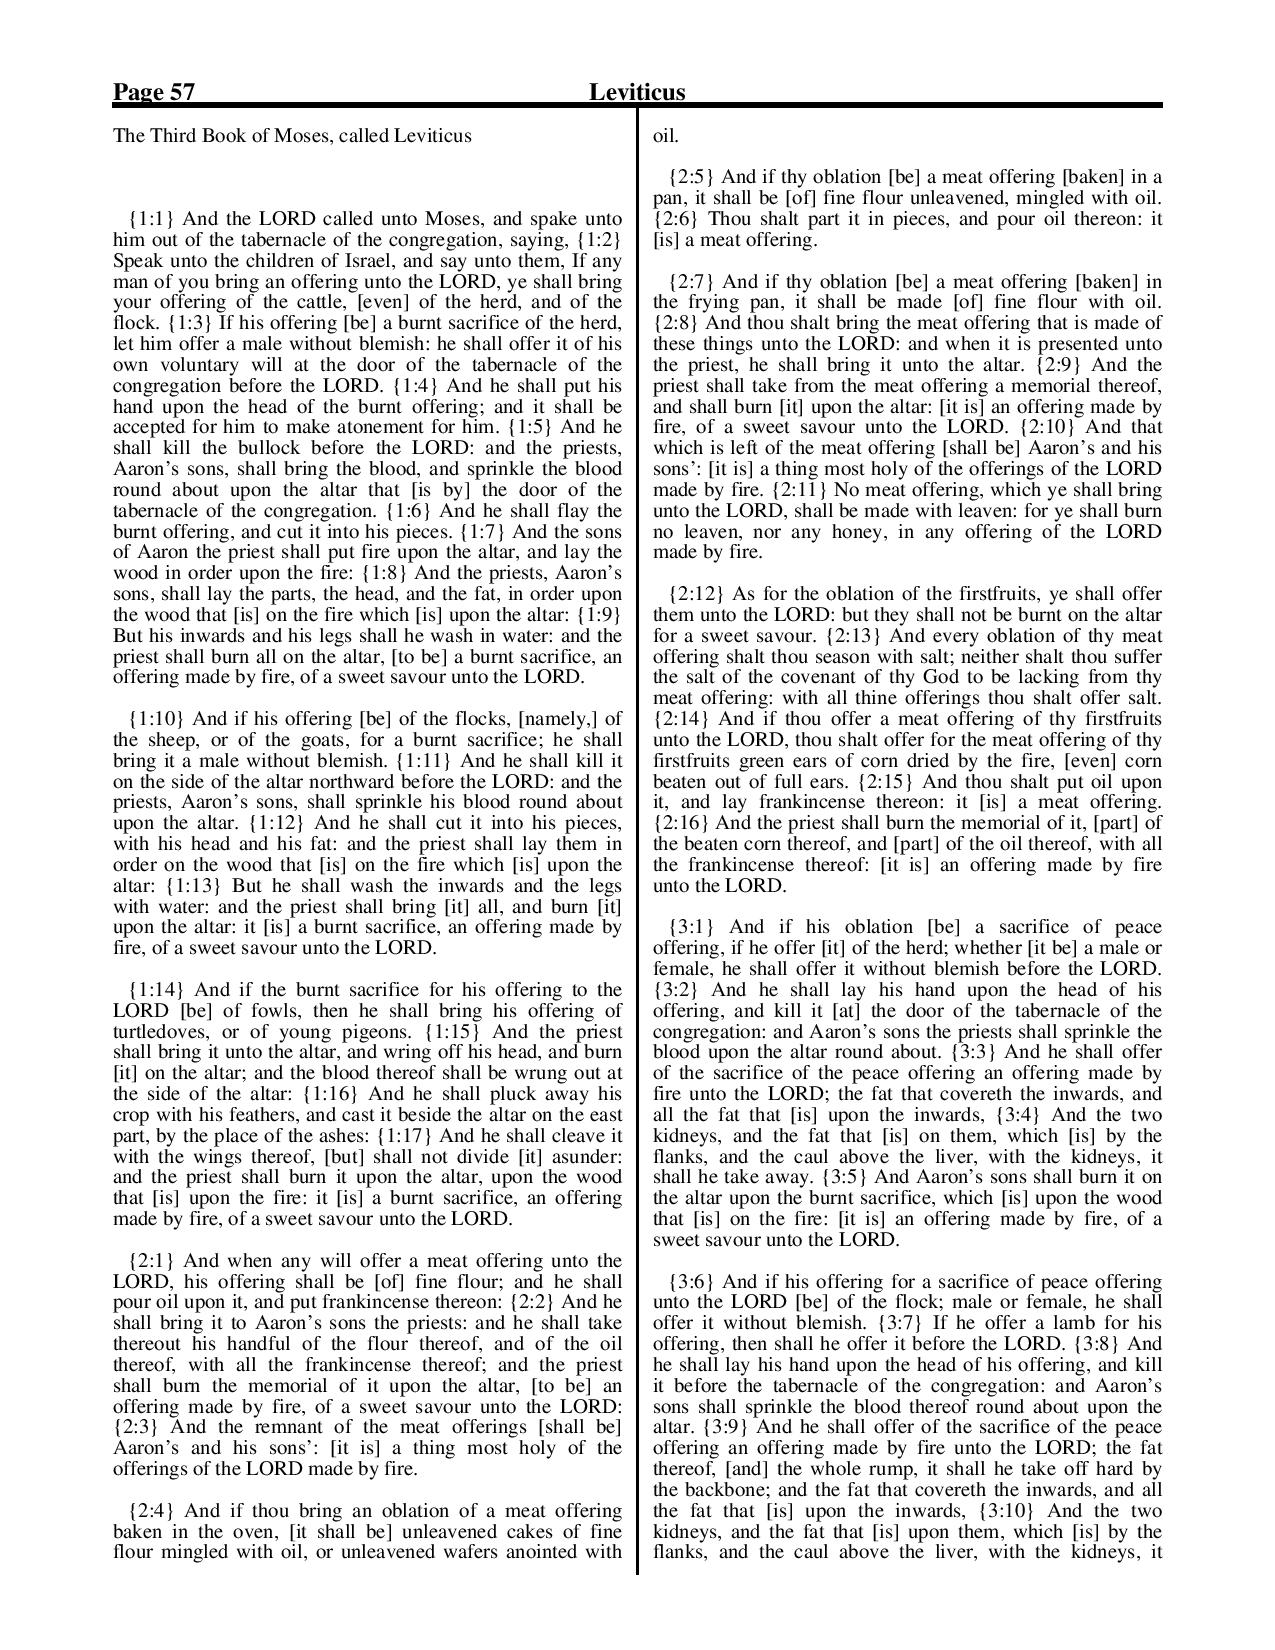 King-James-Bible-KJV-Bible-PDF-page-078